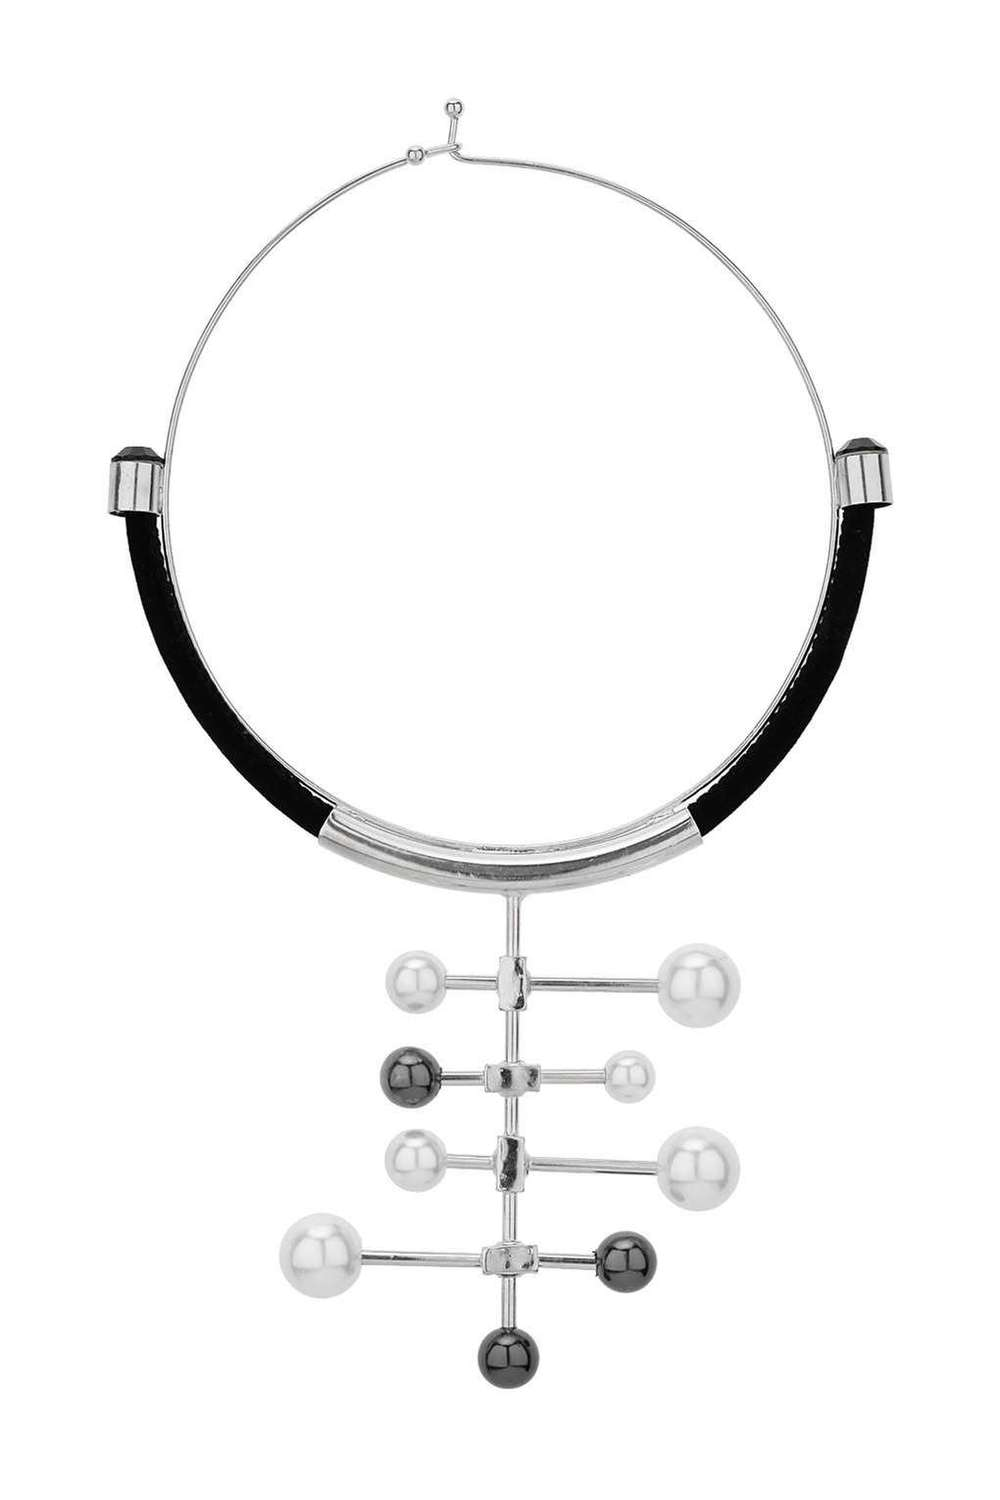 Atom Torque Necklace. Topshop. Was: $22 Now: $11.